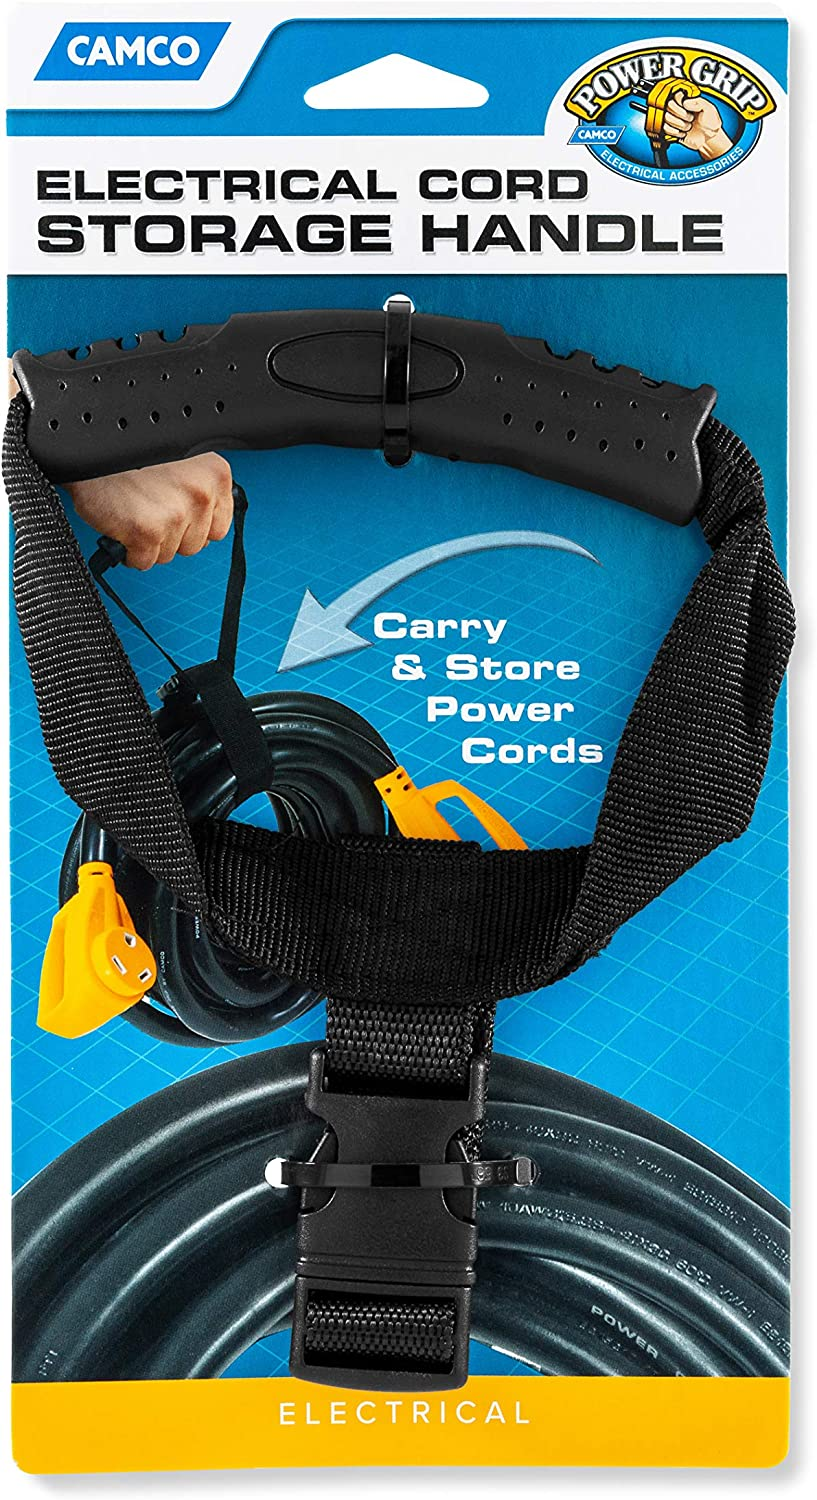 Easily Carry and Hang Hoses 20165 Cords or Ropes and Keep Them Organized While in Storage Camco Hose and Cord Carry Strap